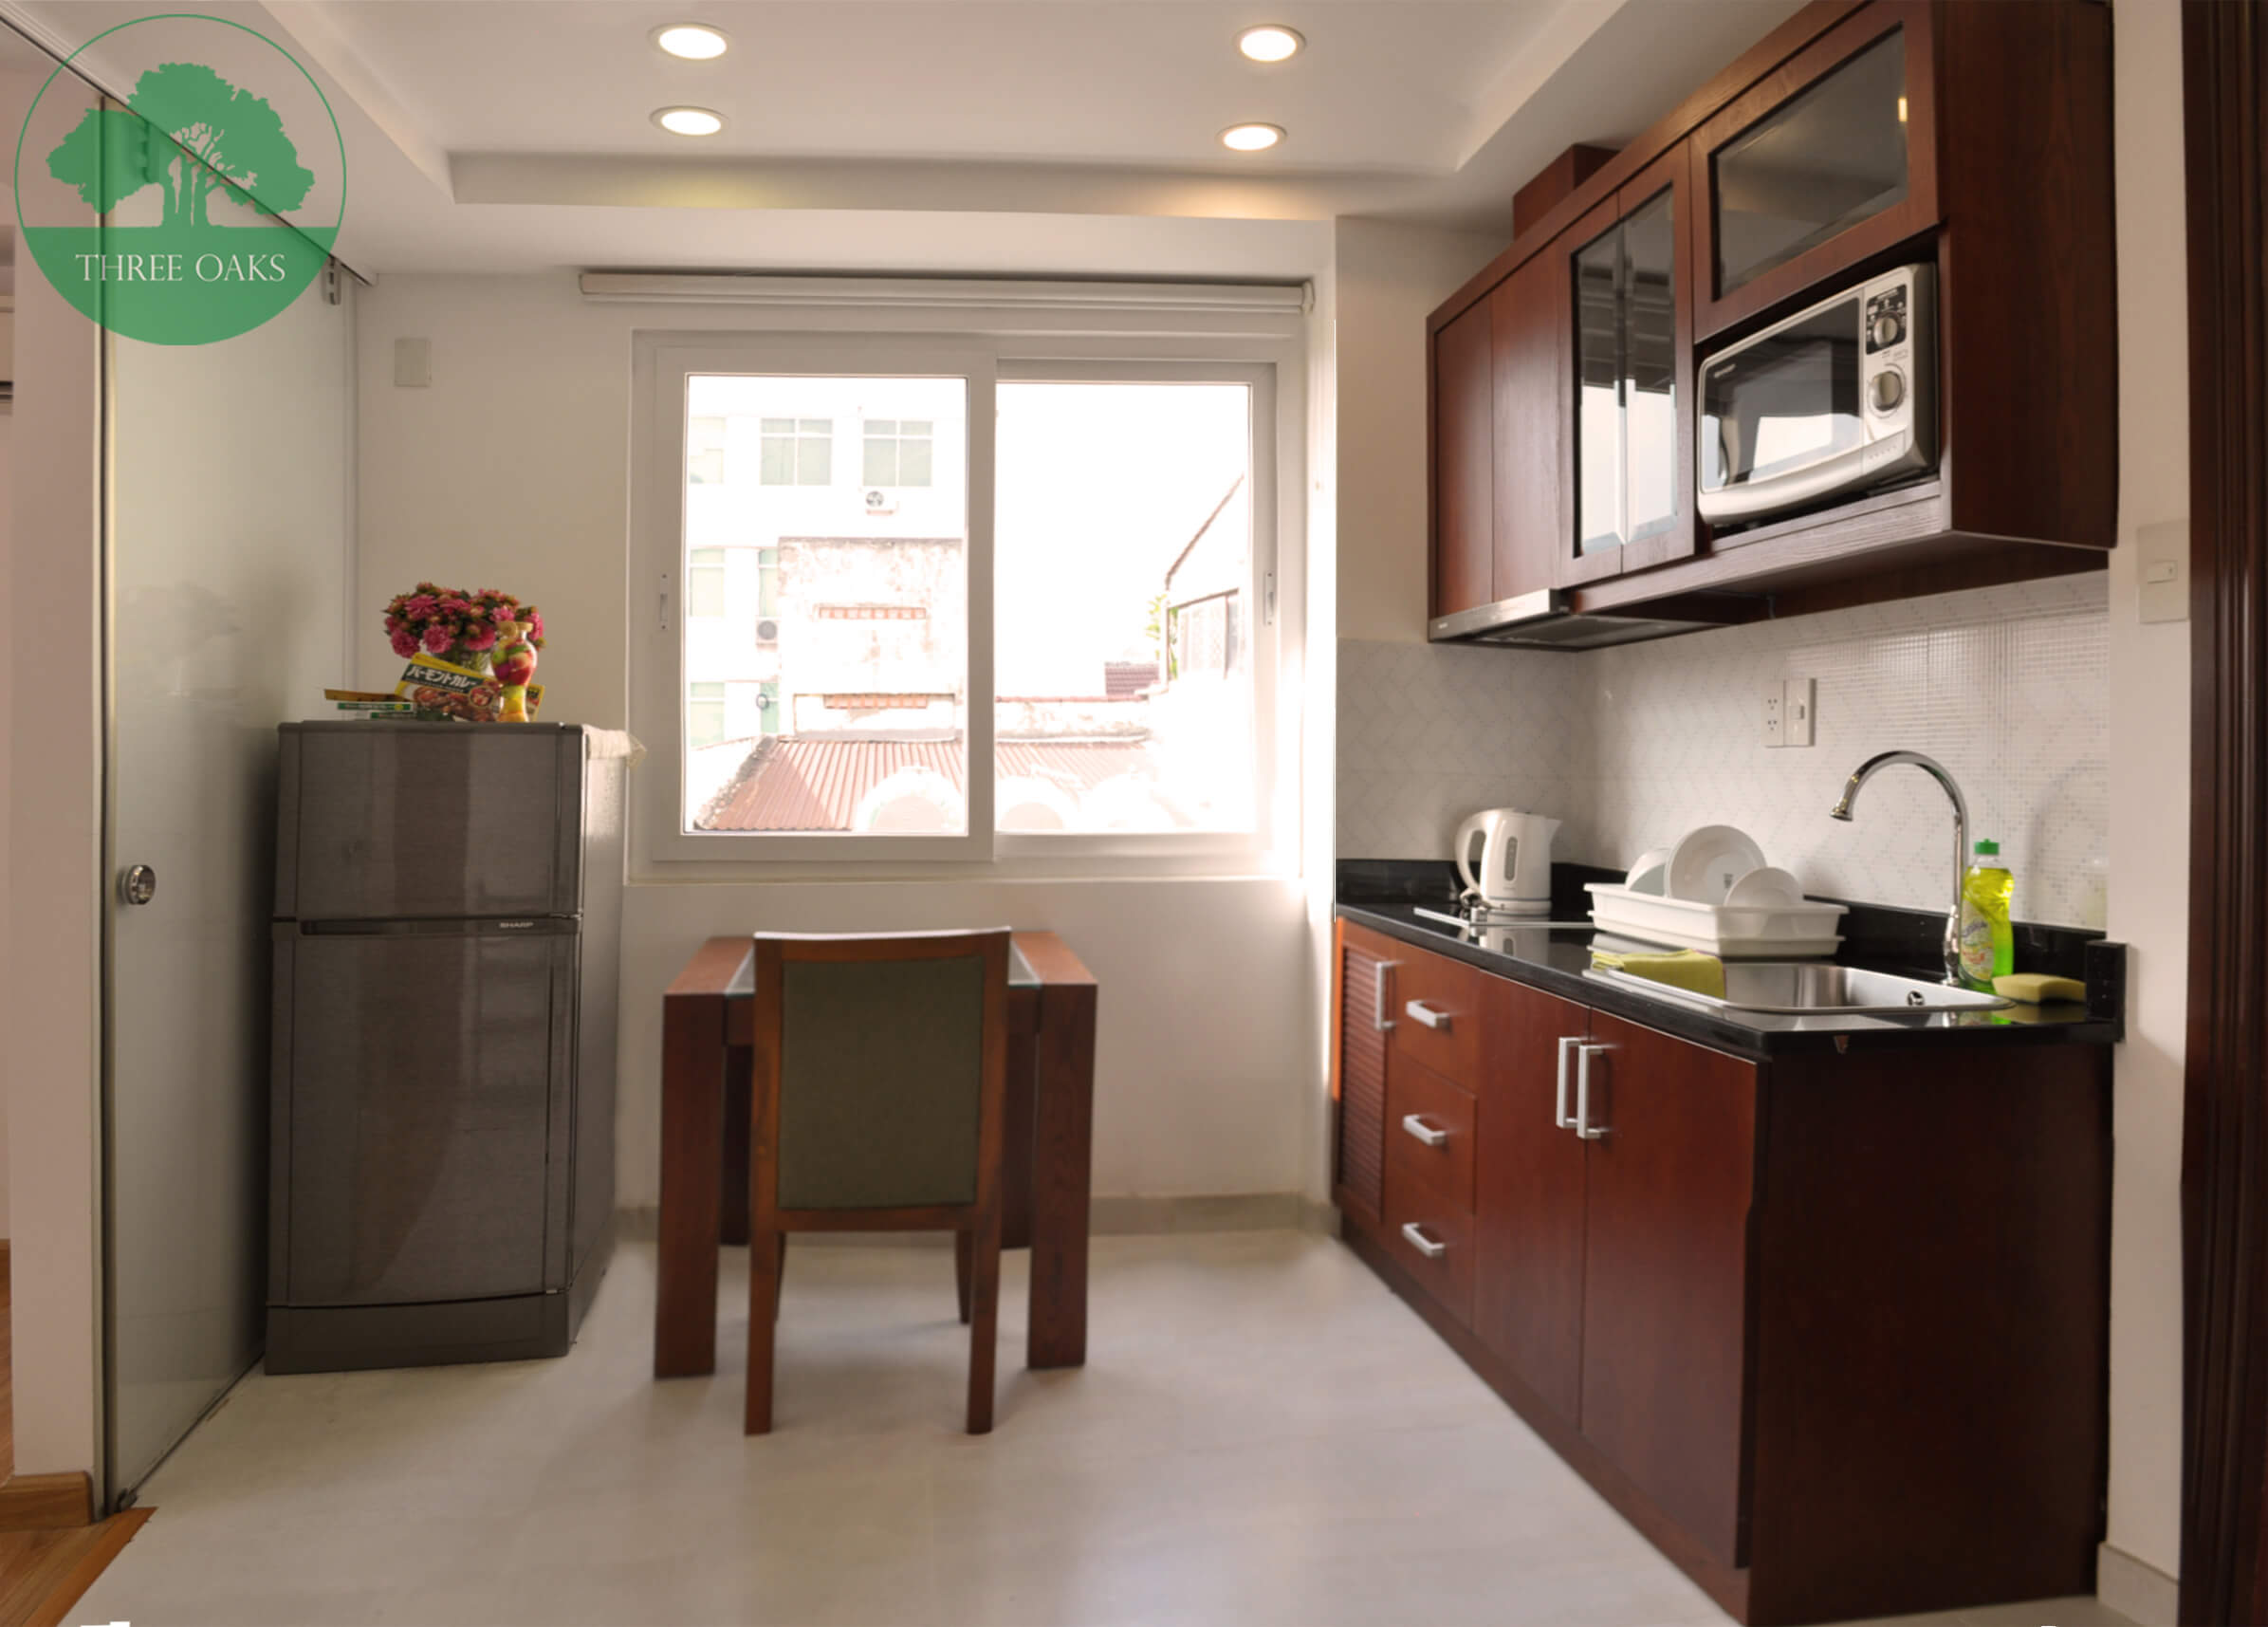 serviced-apartment-in-hcm-three-oaks-2-tybe-a-46